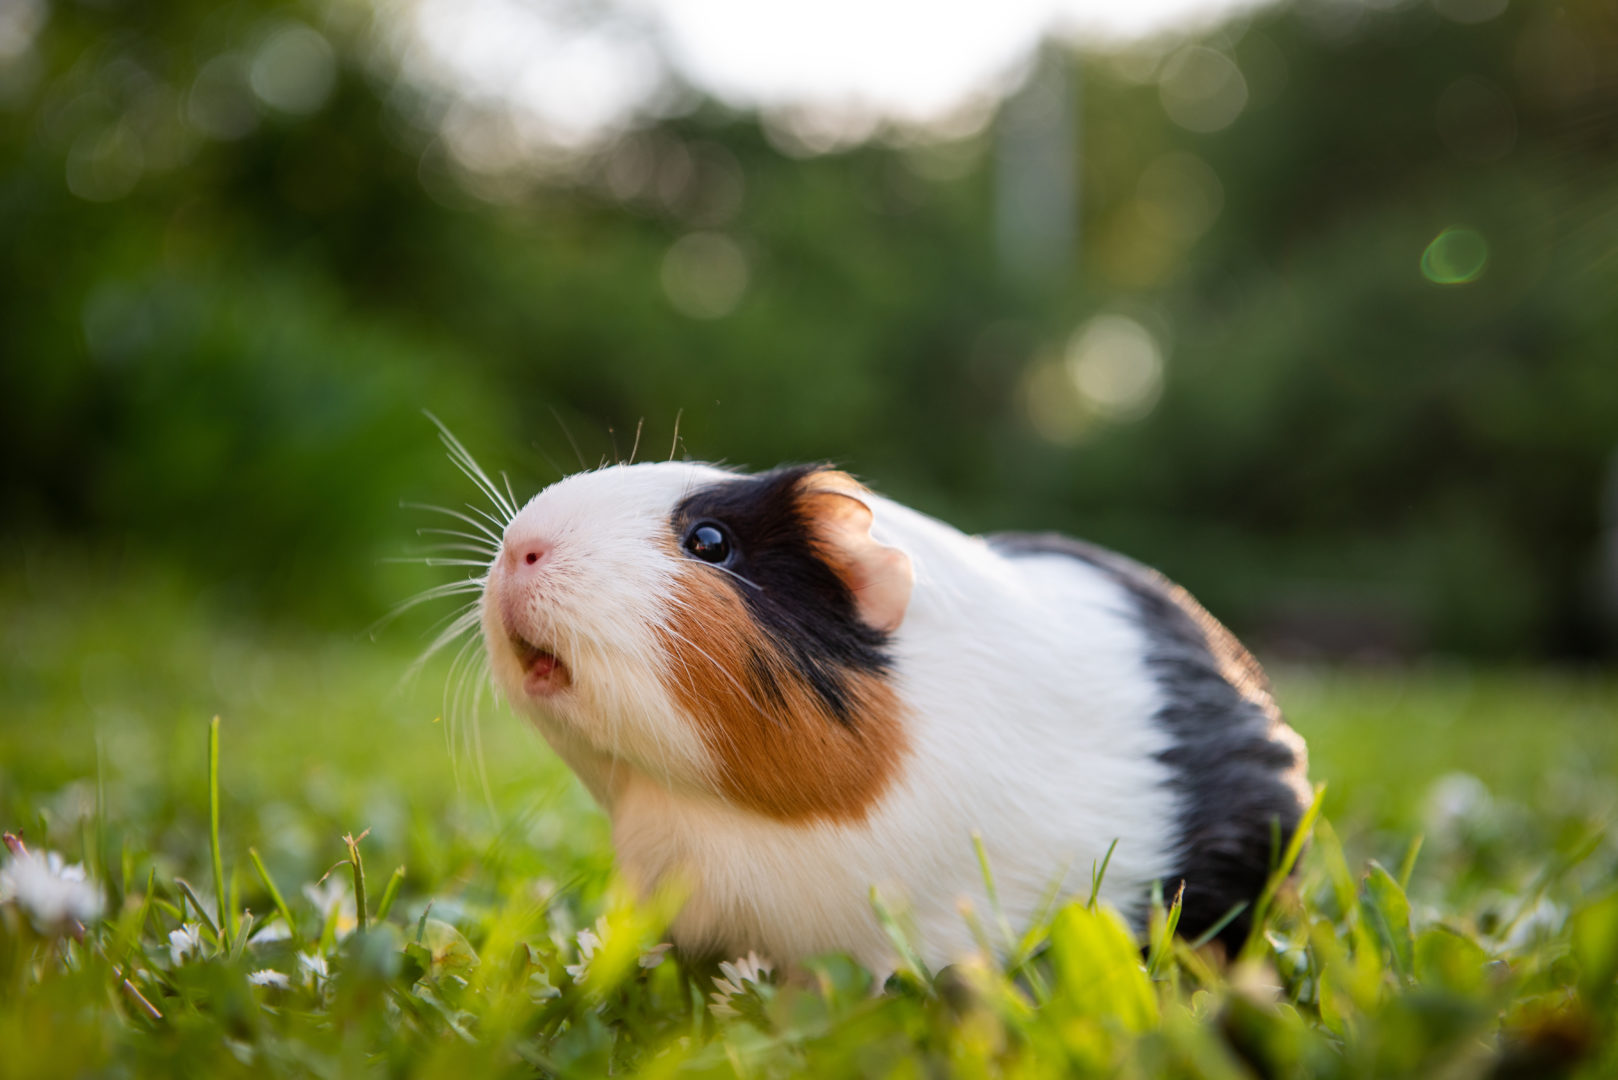 Black, white and brown guinea pig sitting on grass